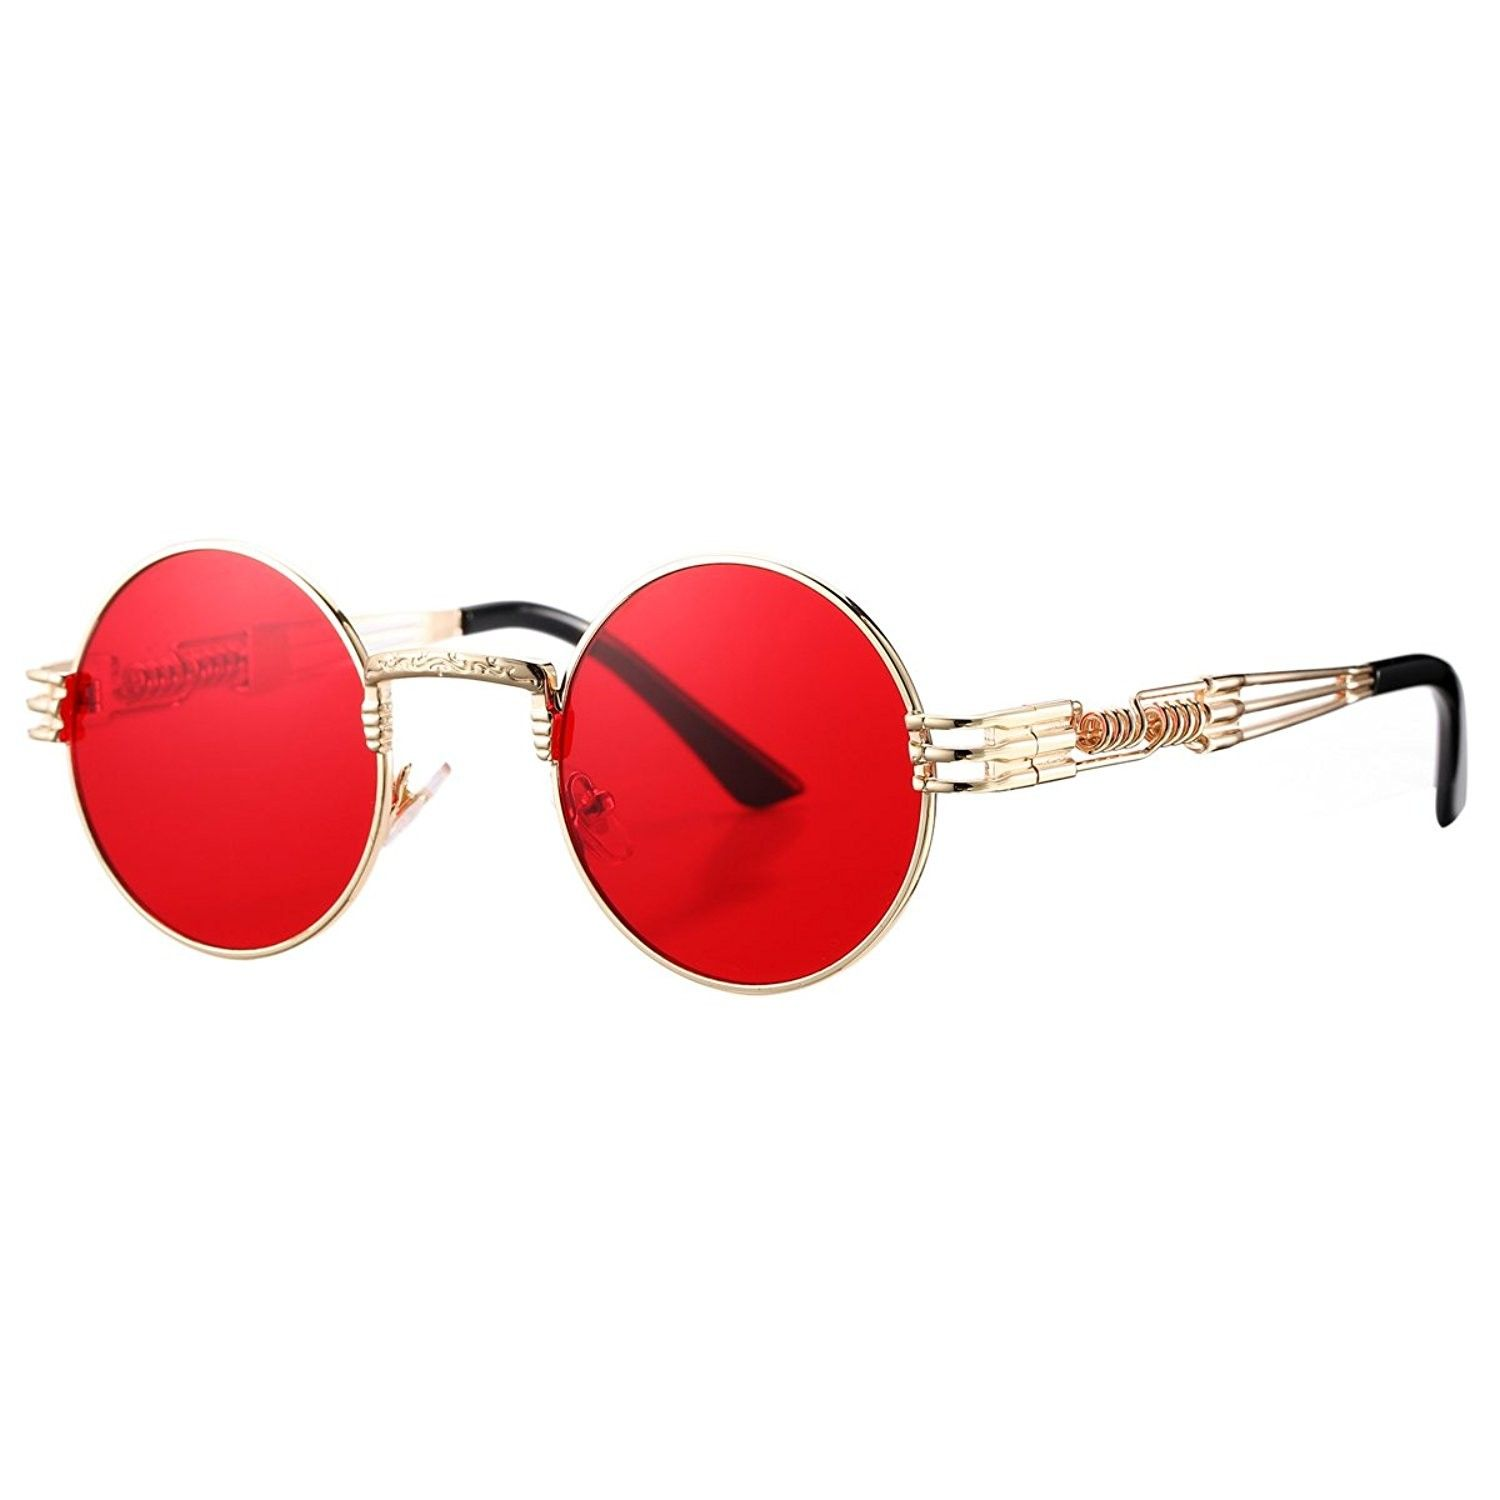 b7eaa17303 Metal Spring Frame Round Steampunk Sunglasses Clear Lens Available - Gold  Frame Red Lens - C8189CR9ORL - Men s Sunglasses